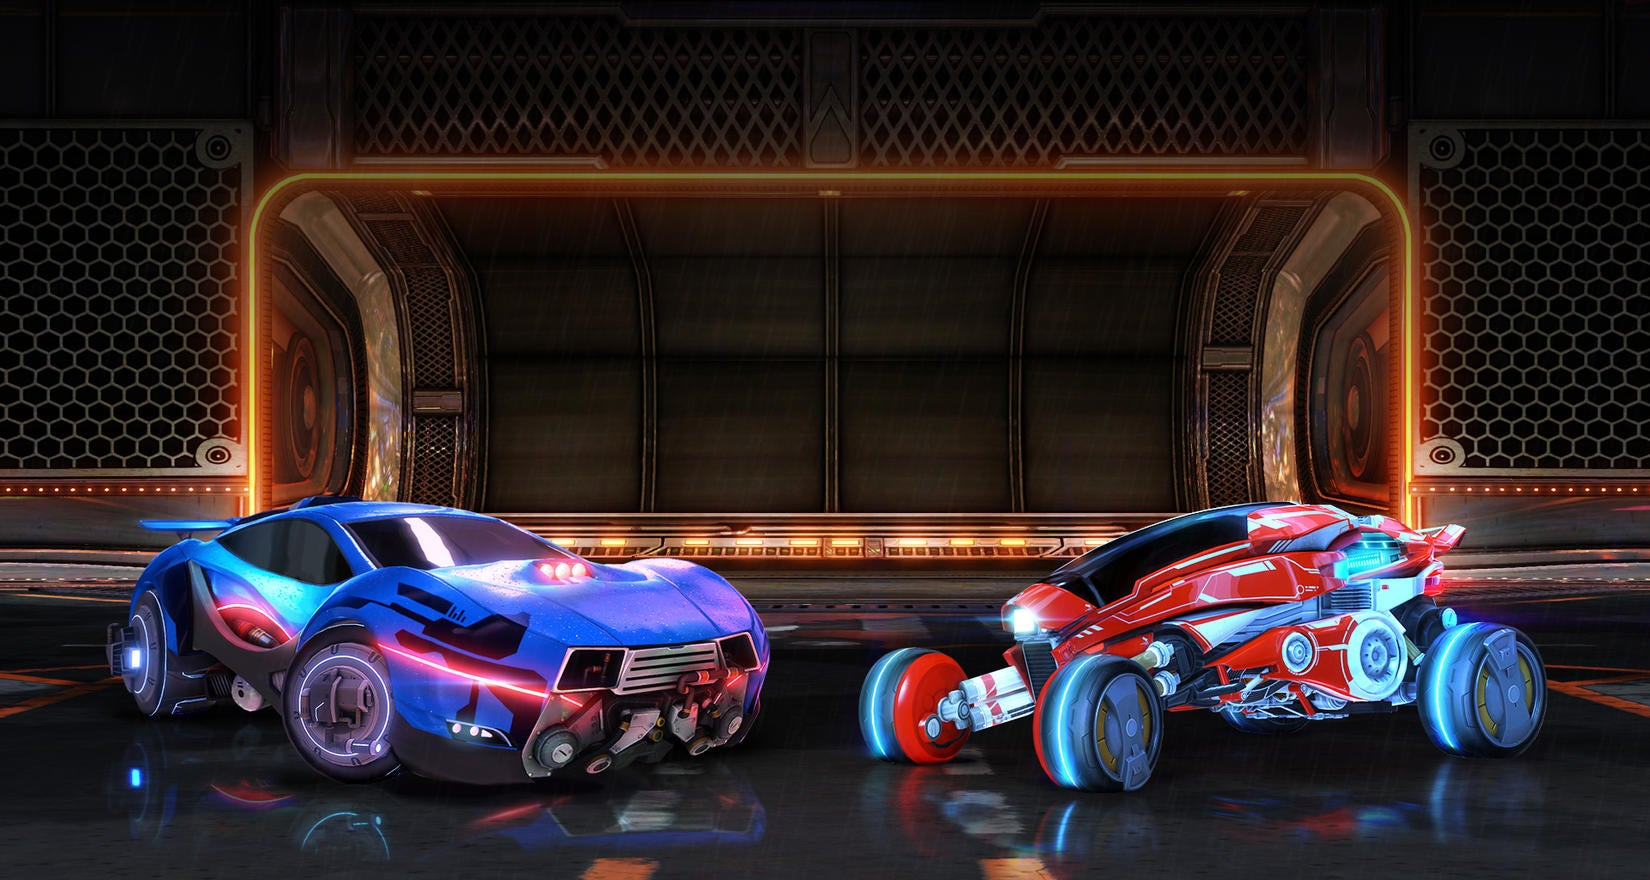 Rezultat iskanja slik za rocket league cars